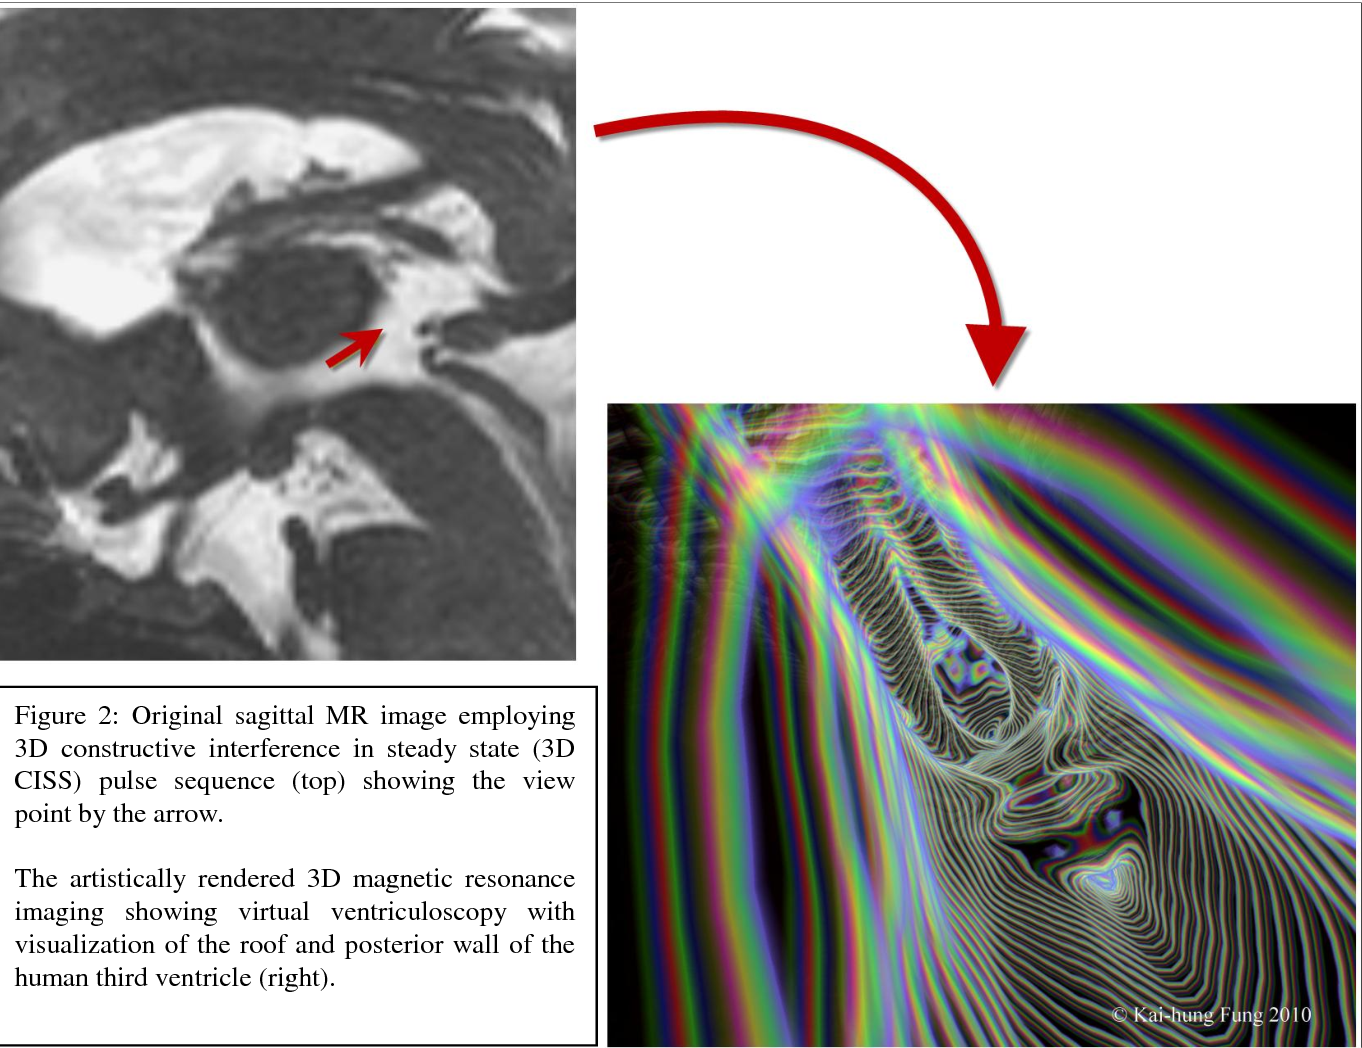 Figure 2: Original sagittal MR image employing 3D constructive interference in steady state (3D CISS) pulse sequence (top) showing the view point by the arrow.